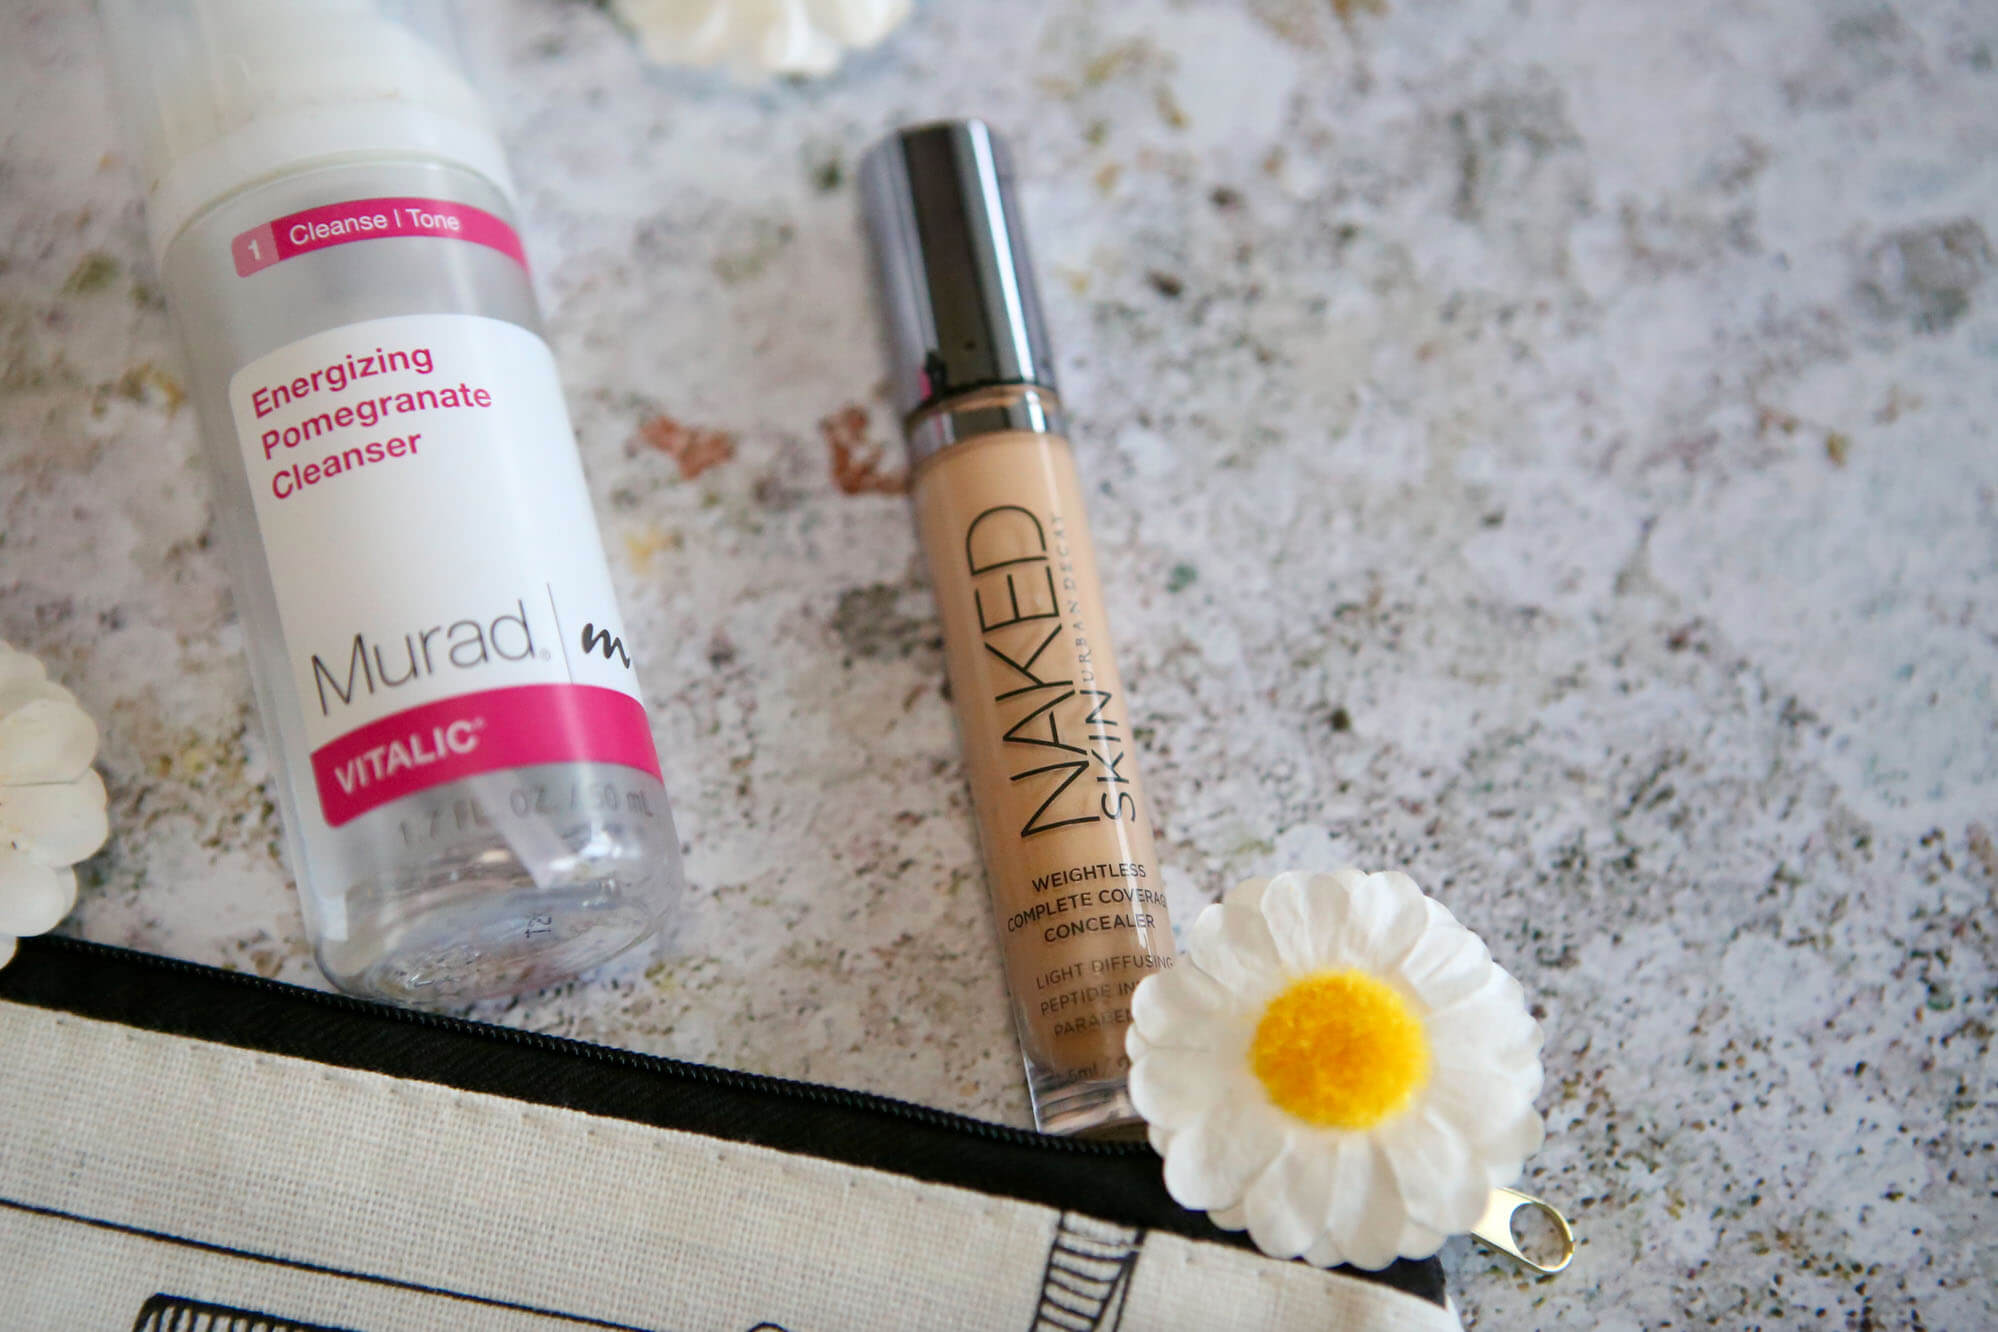 Empties Cleanser And Concealer